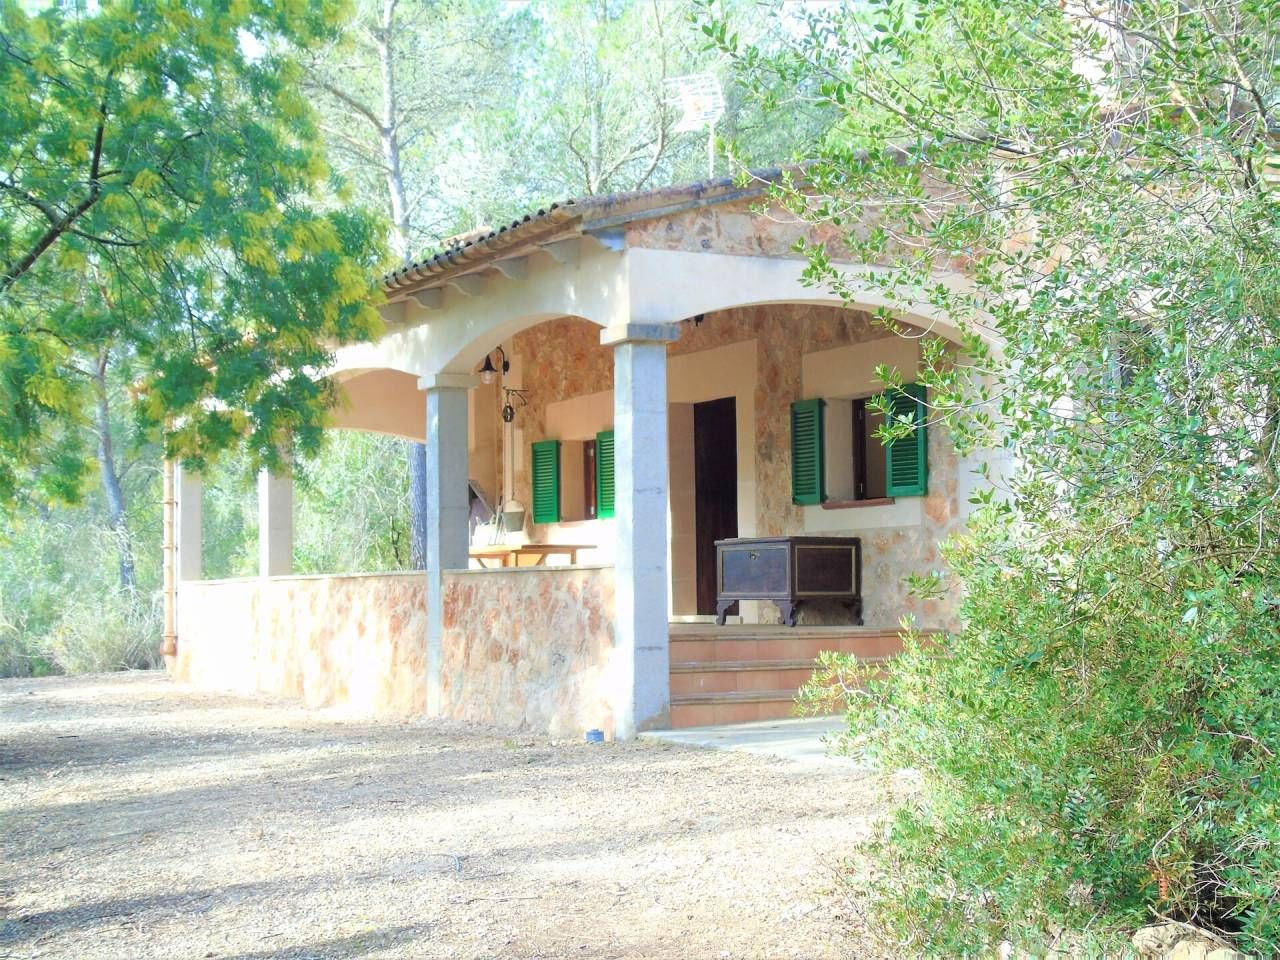 Rent Country house in Campos. Casa de campo en alquiler en campos